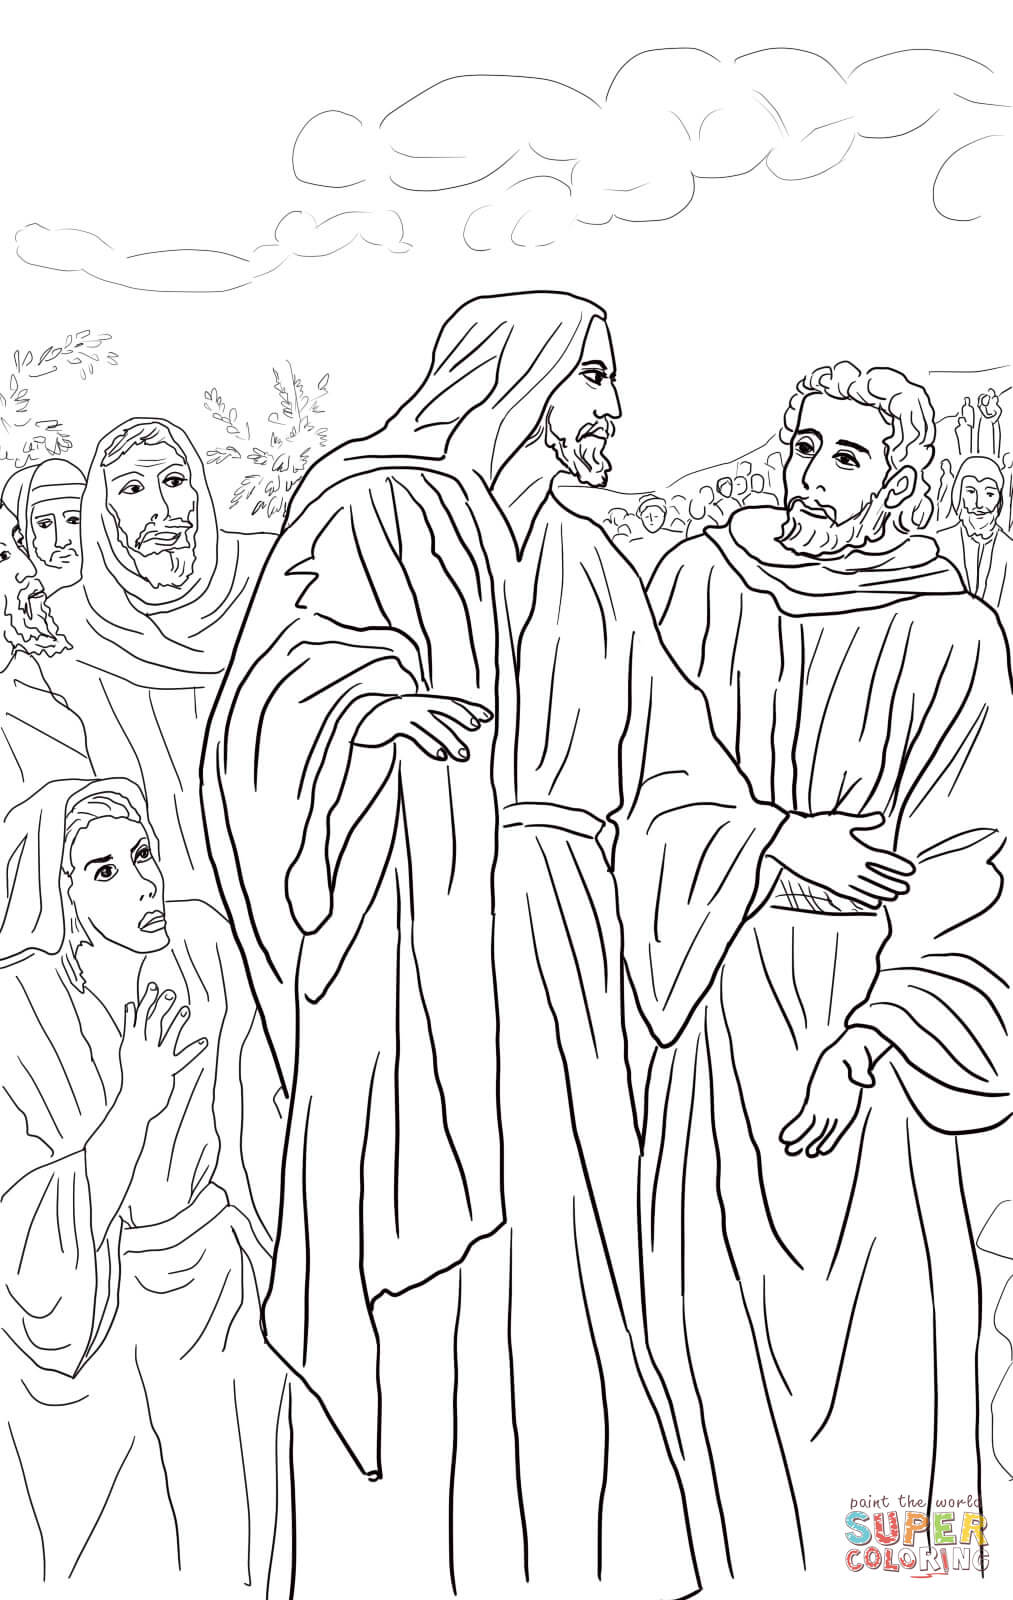 Unmerciful Servant Coloring Page Coloring Pages